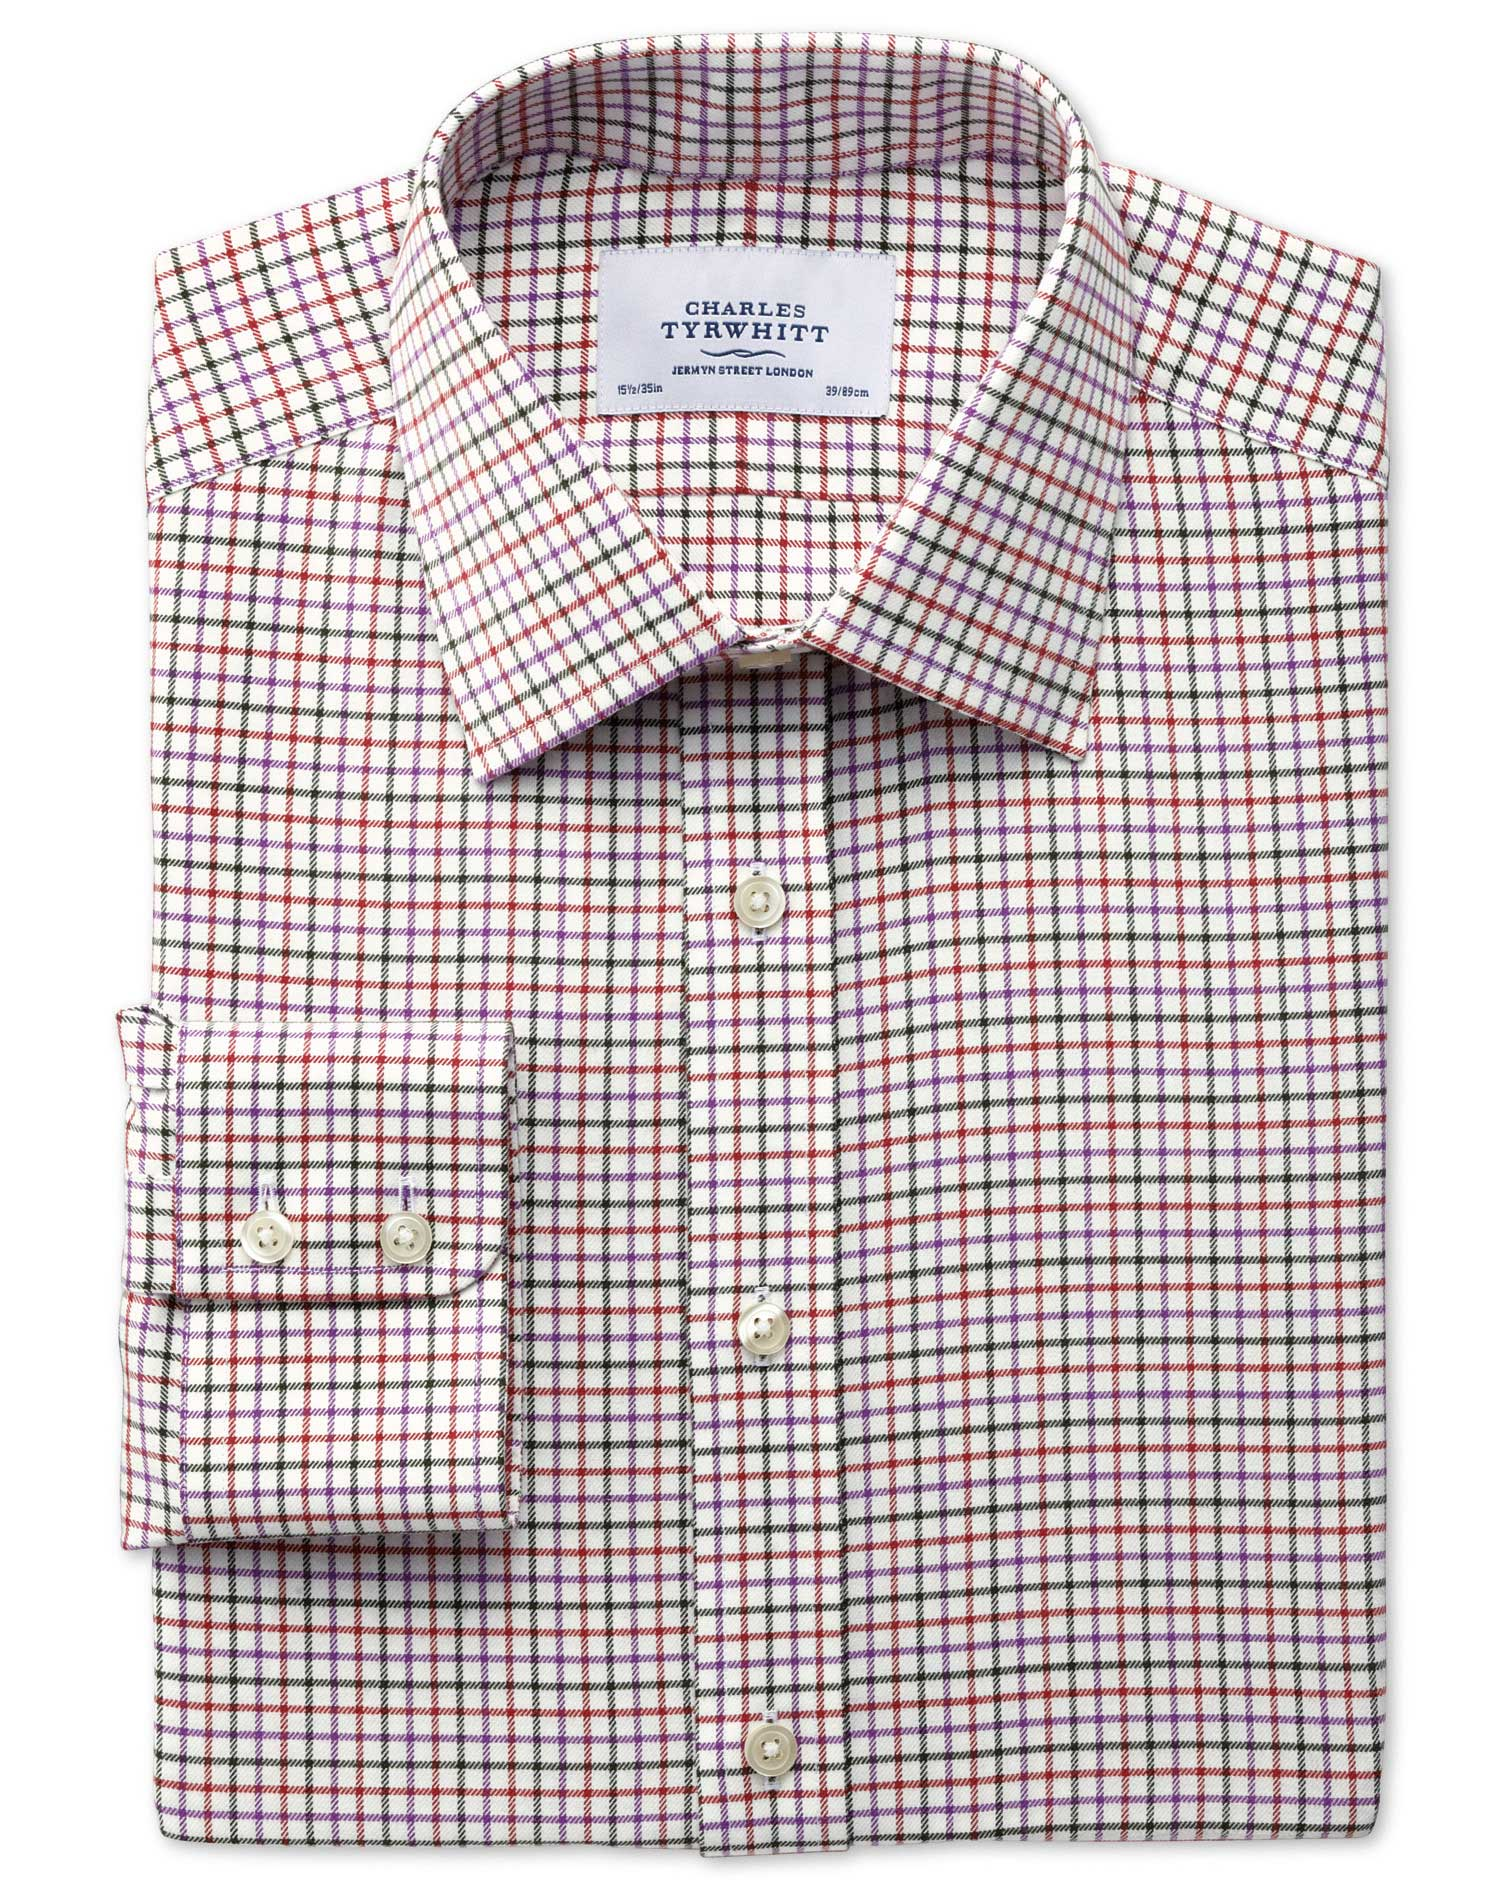 Classic Fit Country Check Purple and Orange Cotton Formal Shirt Single Cuff Size 15/33 by Charles Ty